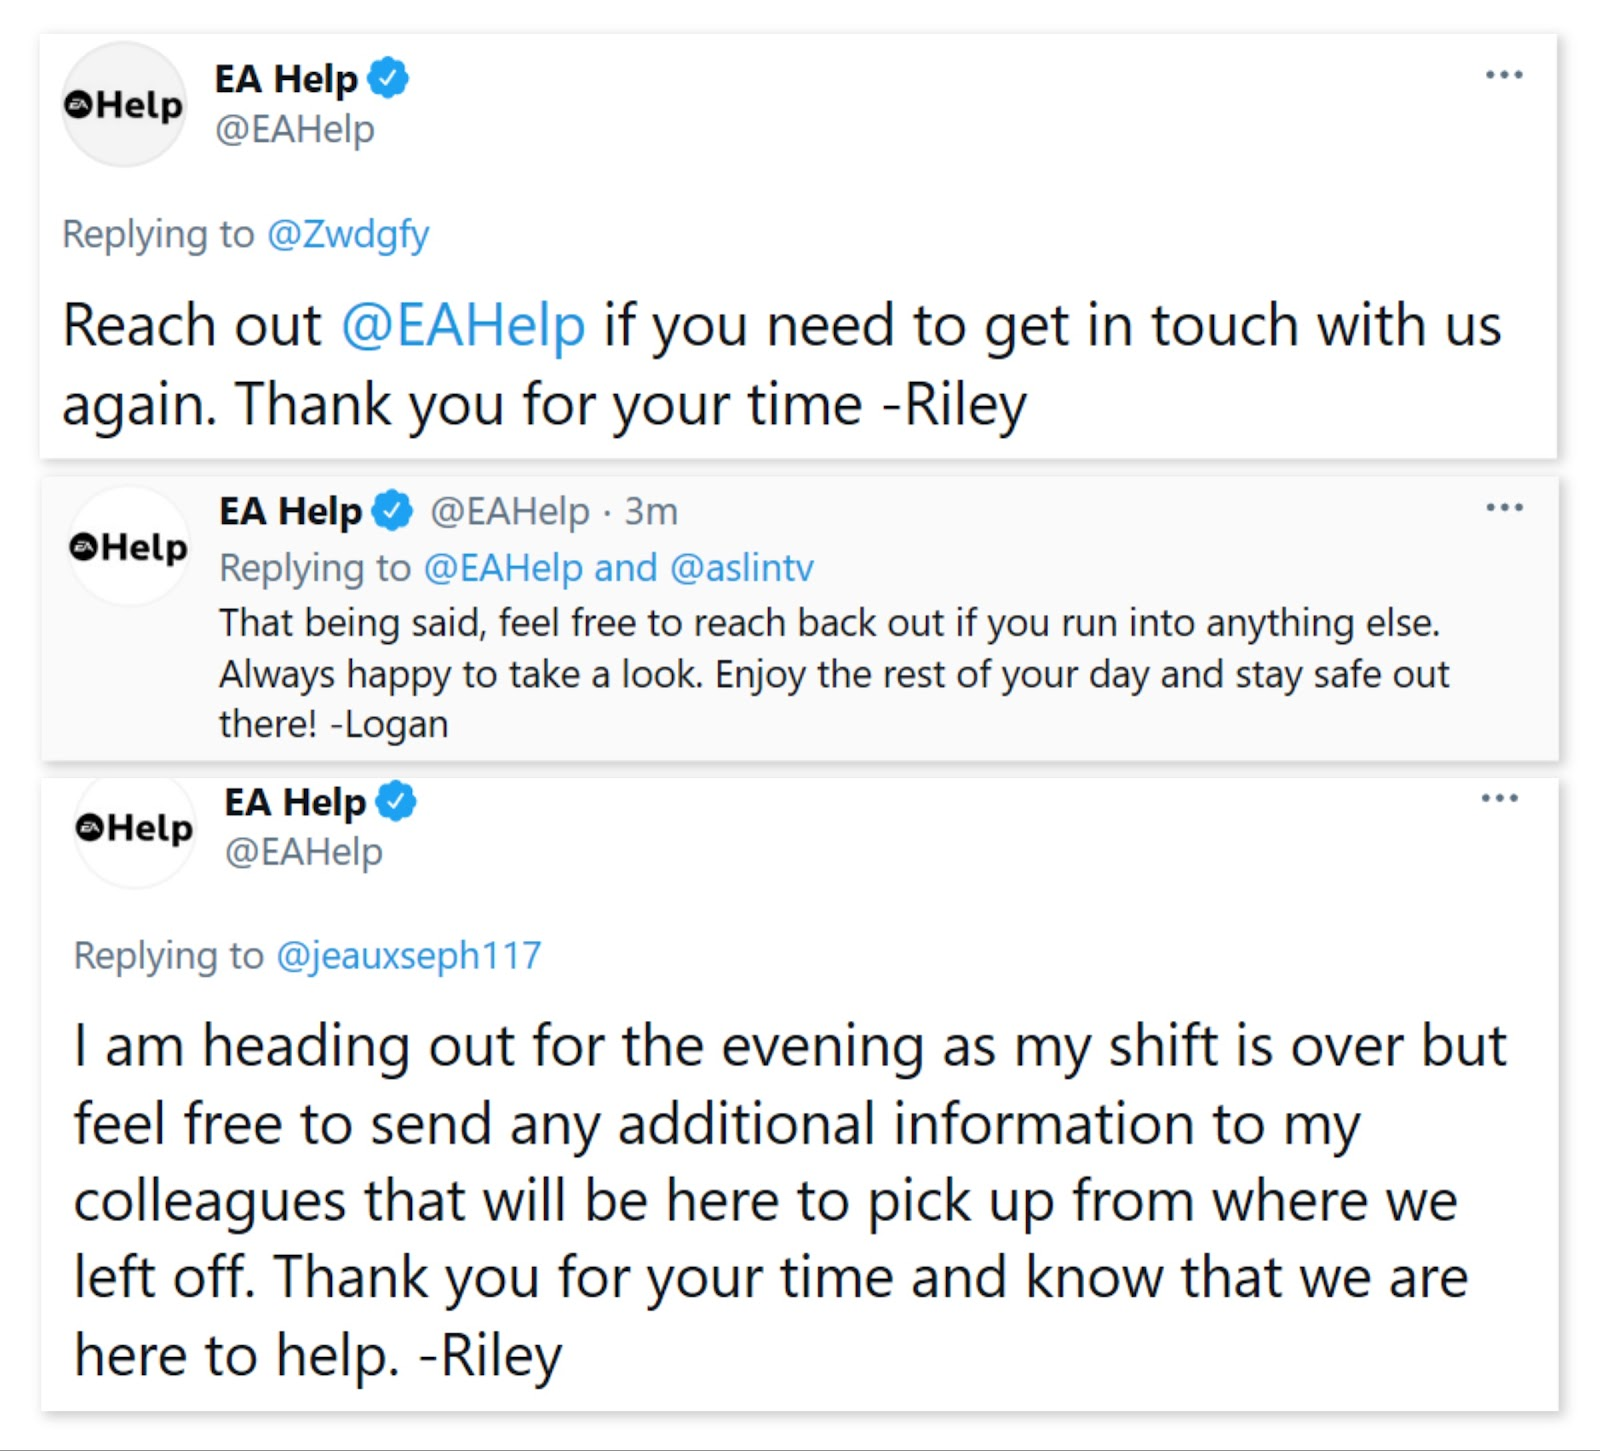 EA help closing interactions with customer on twitter